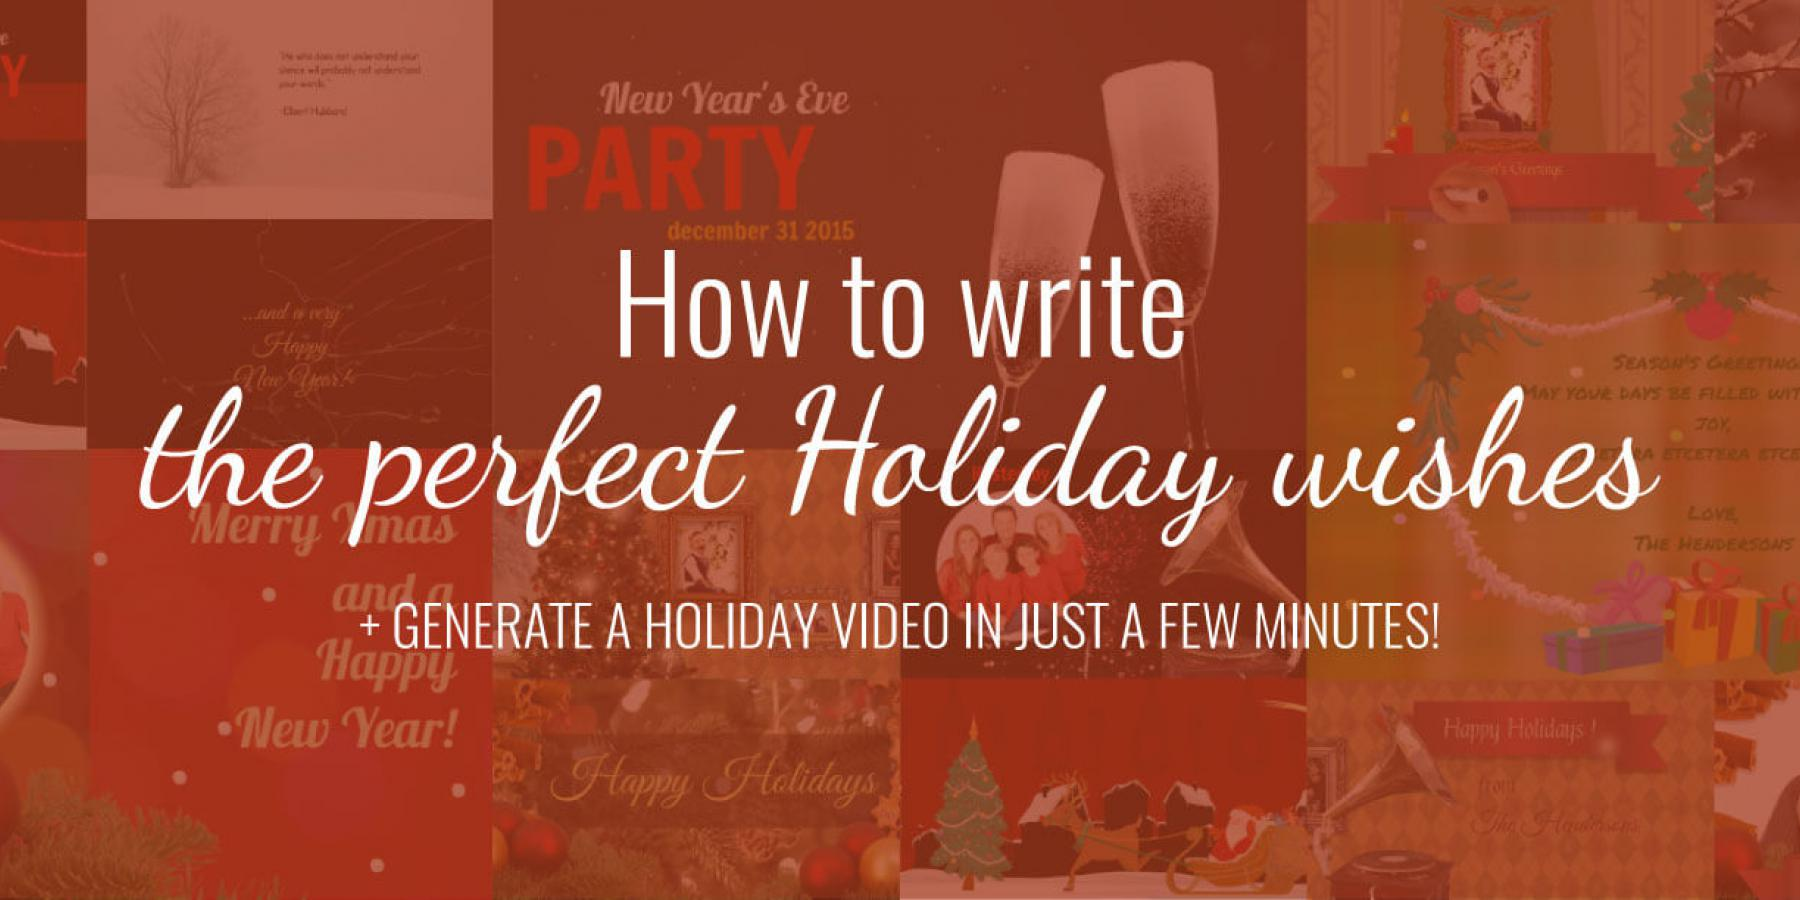 How to write the perfect holiday wishes moovly holiday wishes generate free video make christmas animation kristyandbryce Images